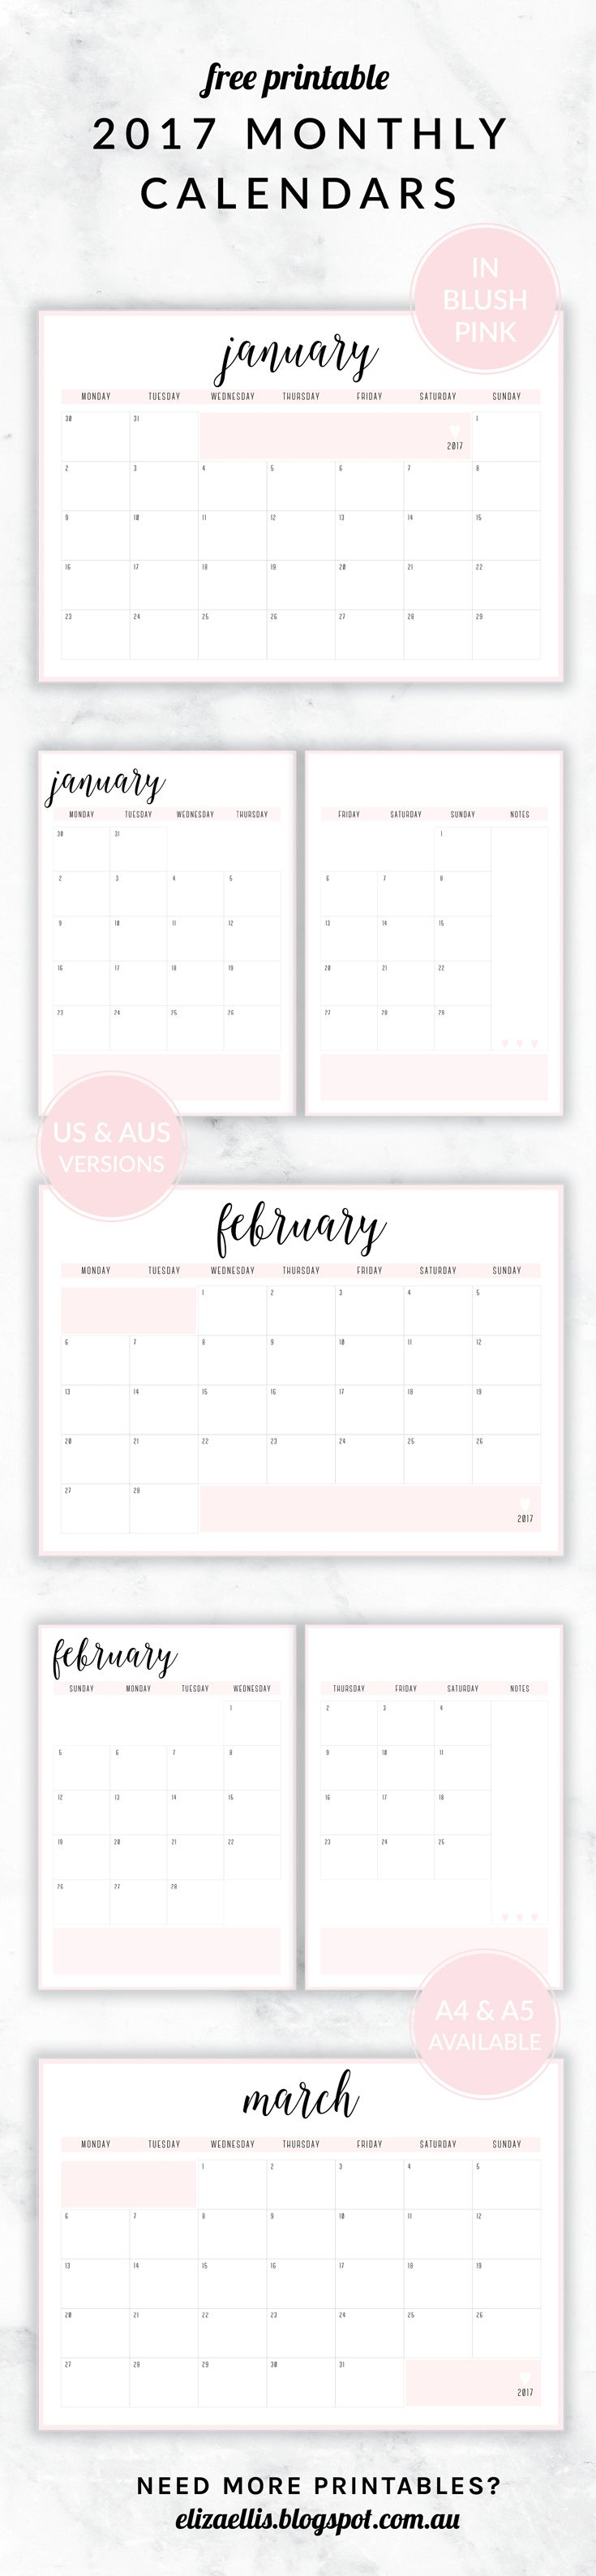 Free Printable 2017 Irma Collection Monthly Calendars // by Eliza Ellis. Available in both A4 and A5 sizes, and in 6 different colors. Check out my website to find matching daily planners, weekly planners, to do lists, notes, accounts, contacts and much much more!